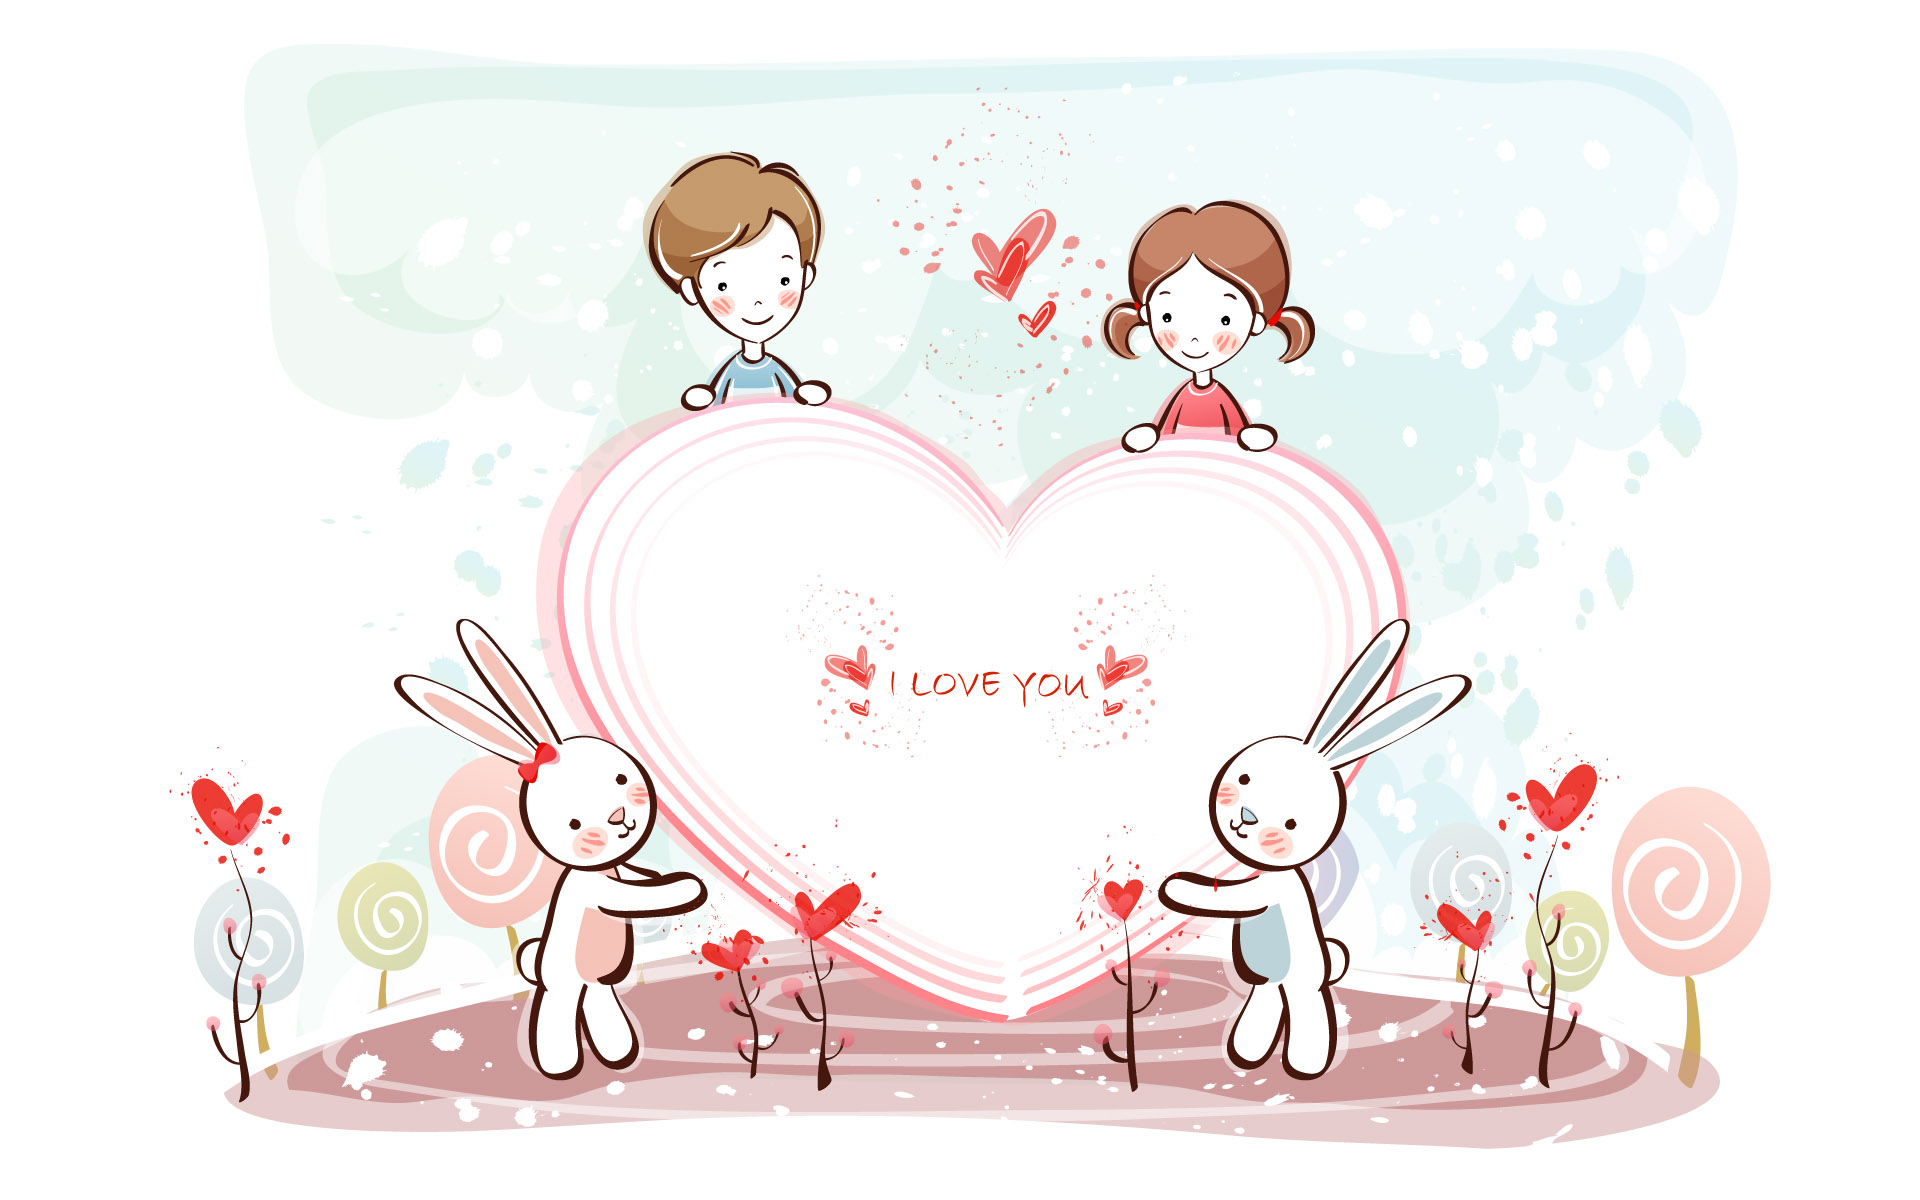 Romantic Valentine's Day illustration class 11203